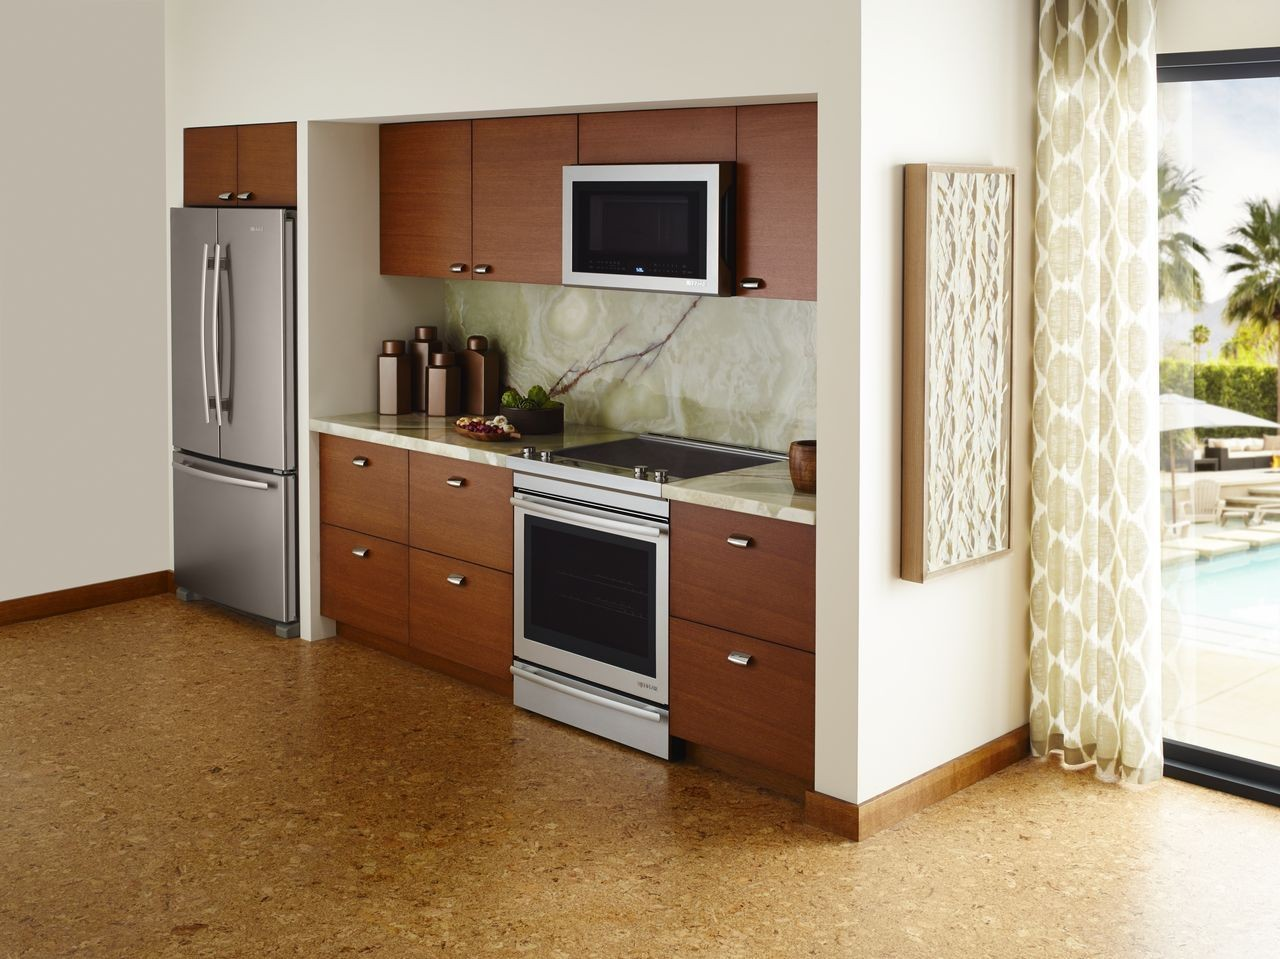 refrigerators front aj counter madison countertop countertops depth